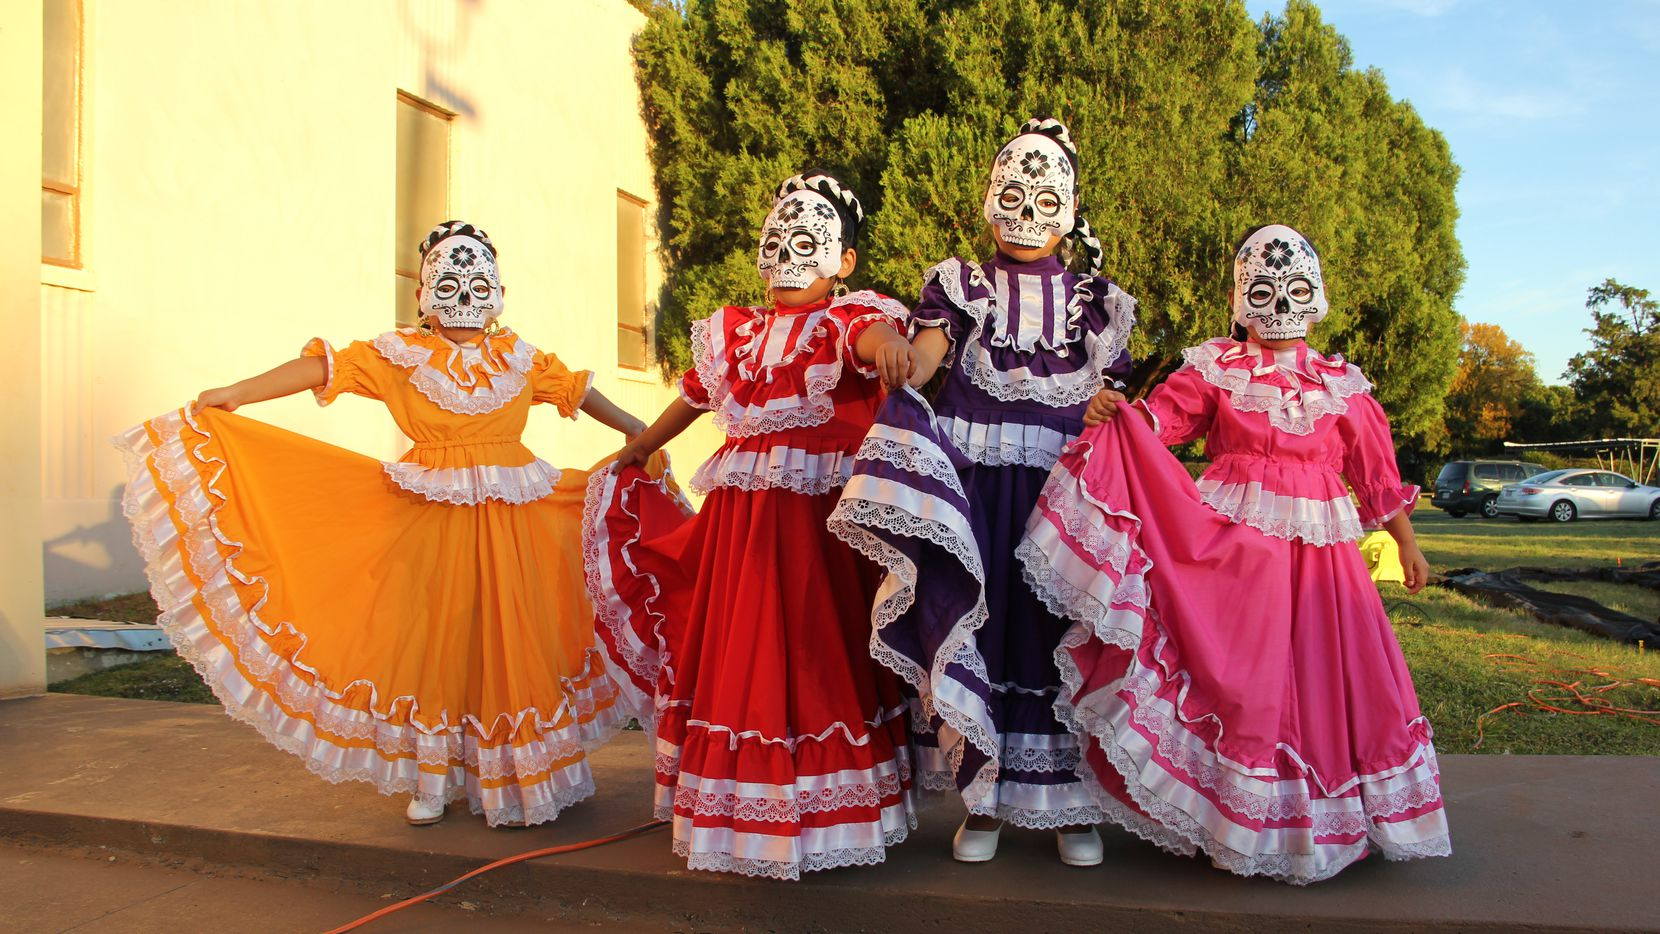 """The Hughes Family Tribute Center Crown Hill Memorial Park will host its fifth Día de los Muertos Celebración on Saturday, Nov. 2. There will be an opening parade, music and dance, face painting, clowns and stilt walkers, an altar and offerings, and a screening of """"Coco."""""""